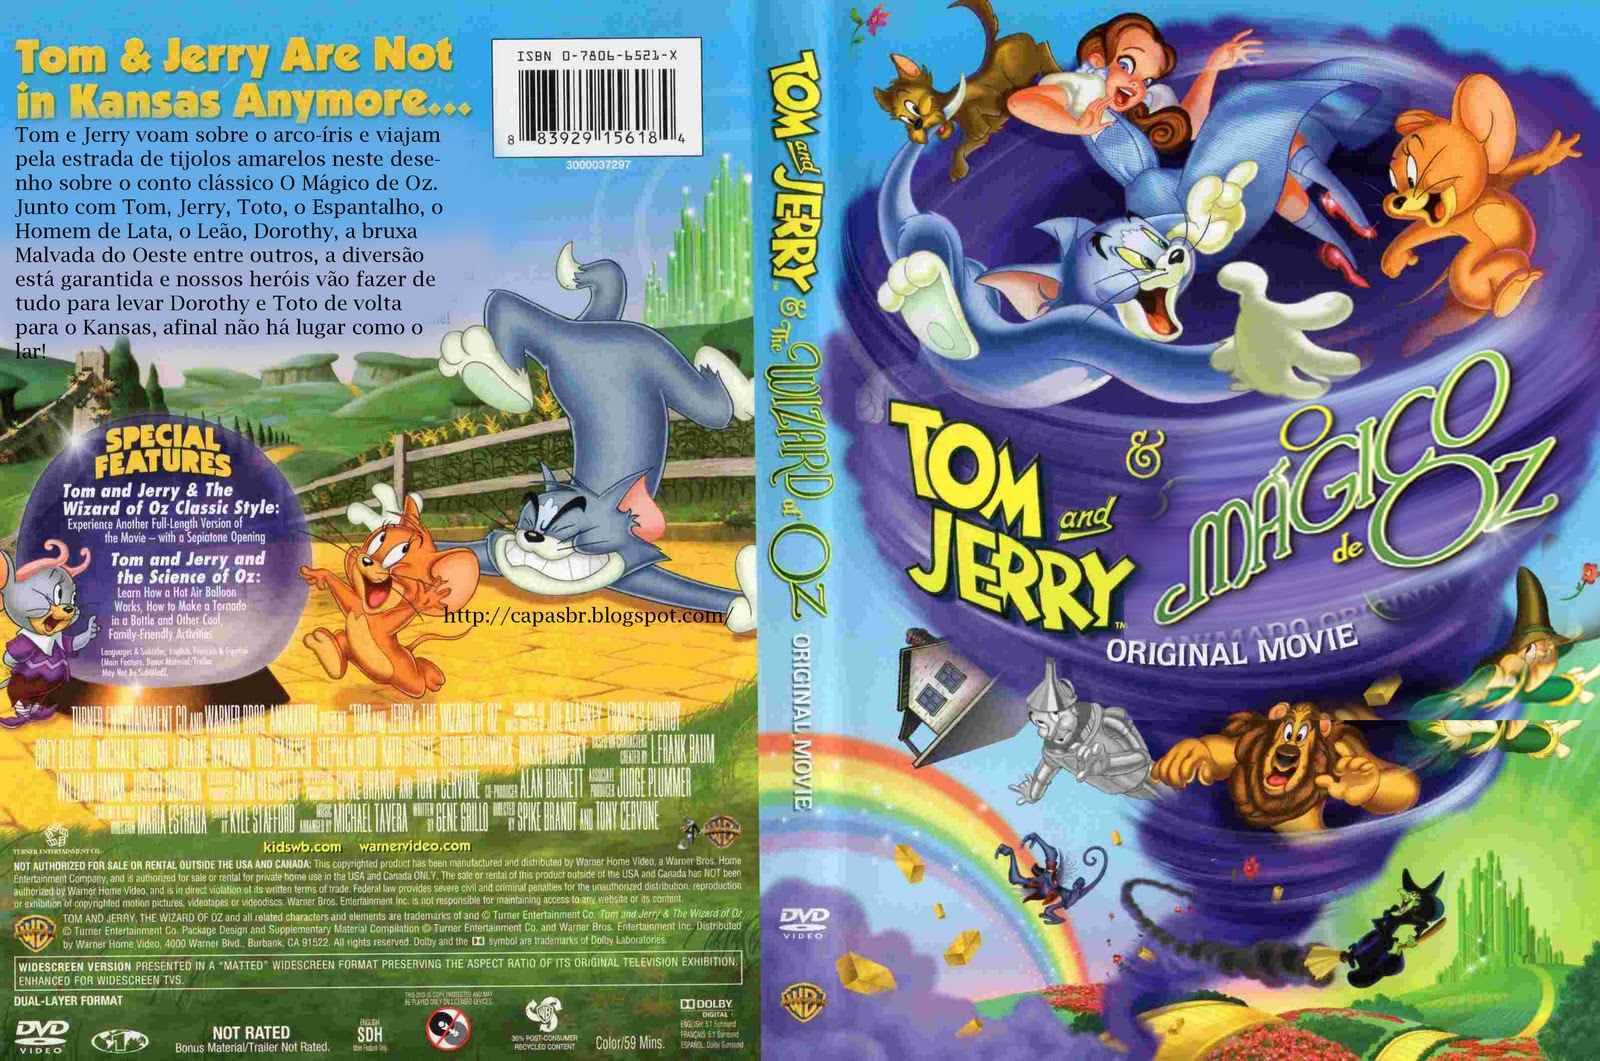 tom and jerry meet sherlock holmes poster images